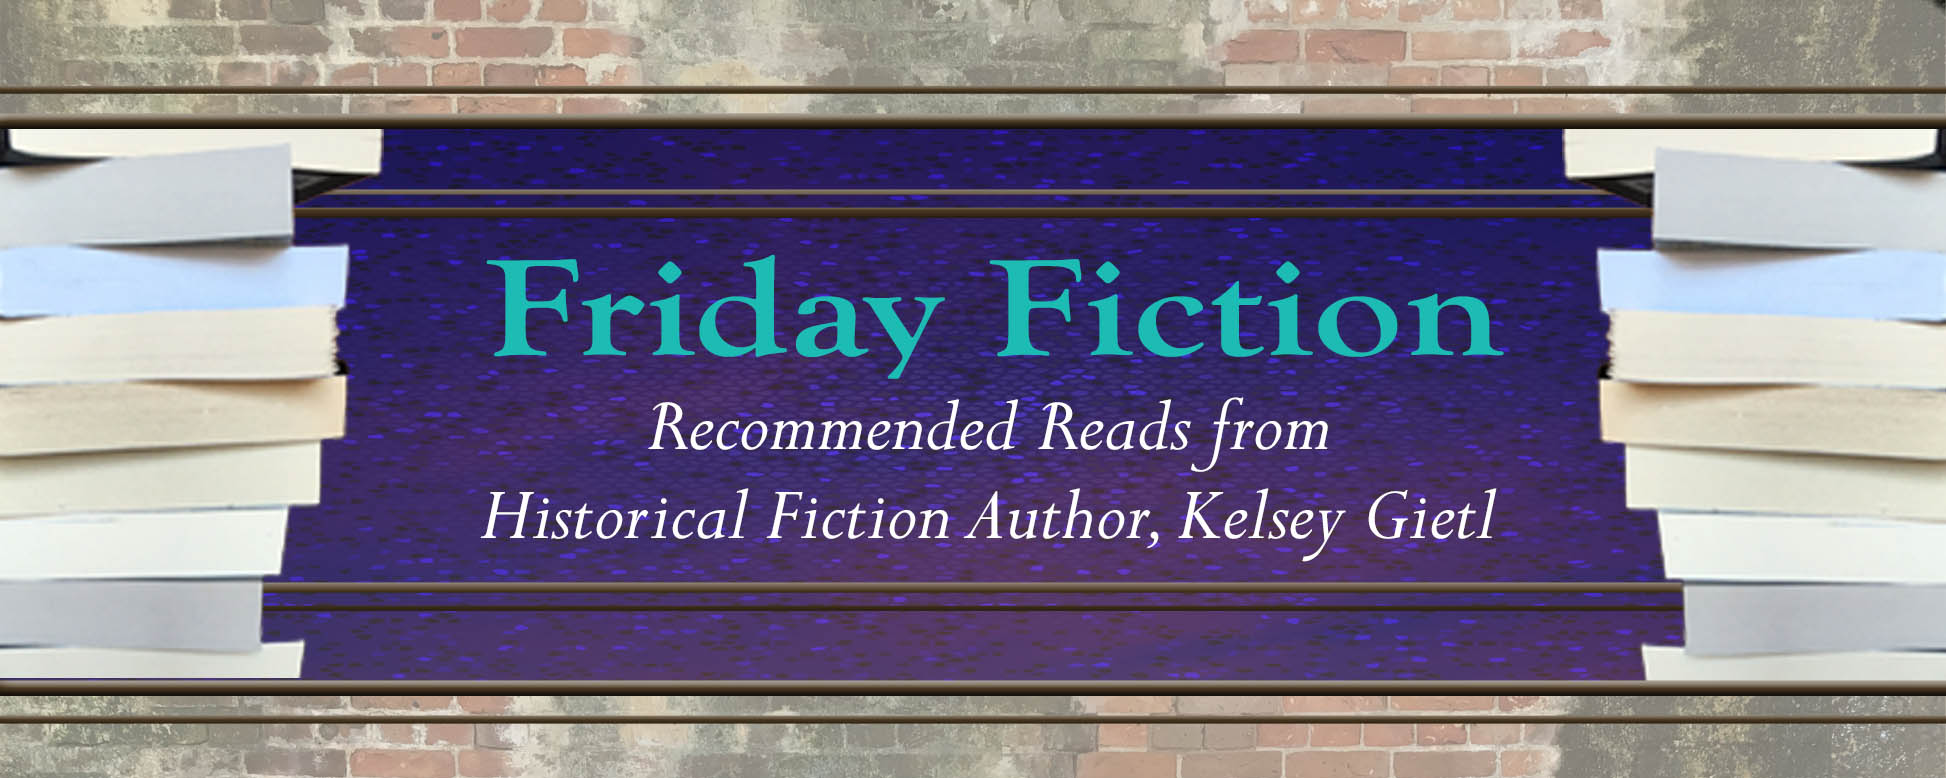 Friday Fiction Cover 6-28-2021